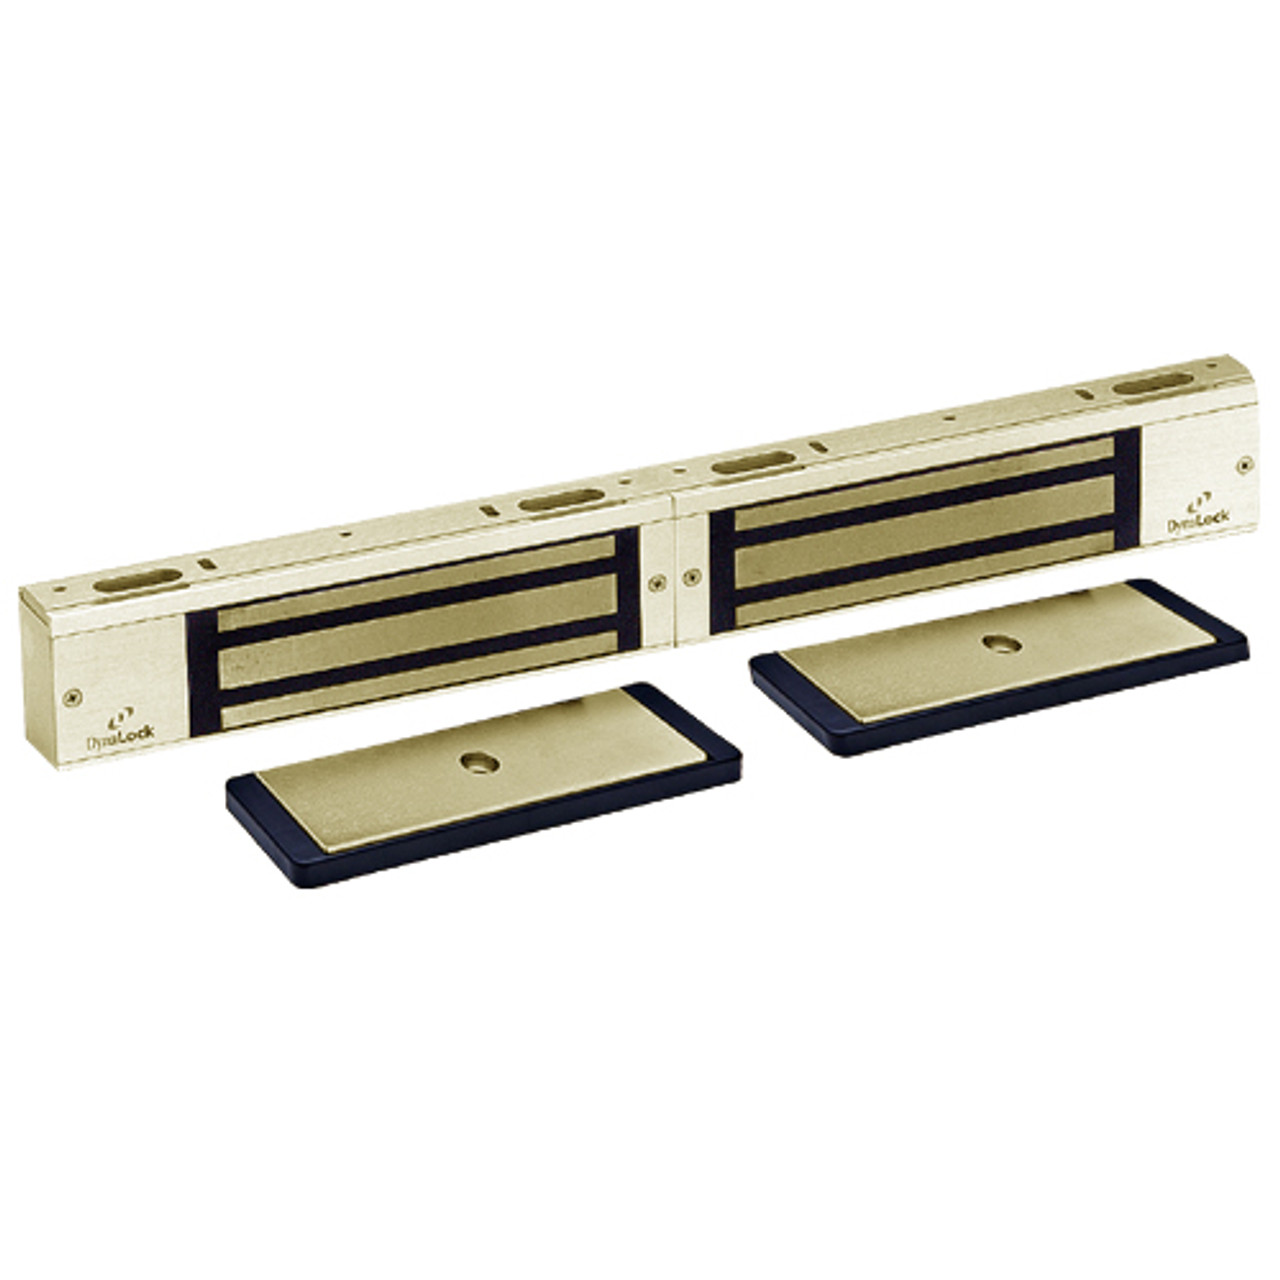 3002TJ32-US4-VOP2 DynaLock 3000 Series 1500 LBs Double Electromagnetic Lock for Inswing Door with Value Option Package in Satin Brass